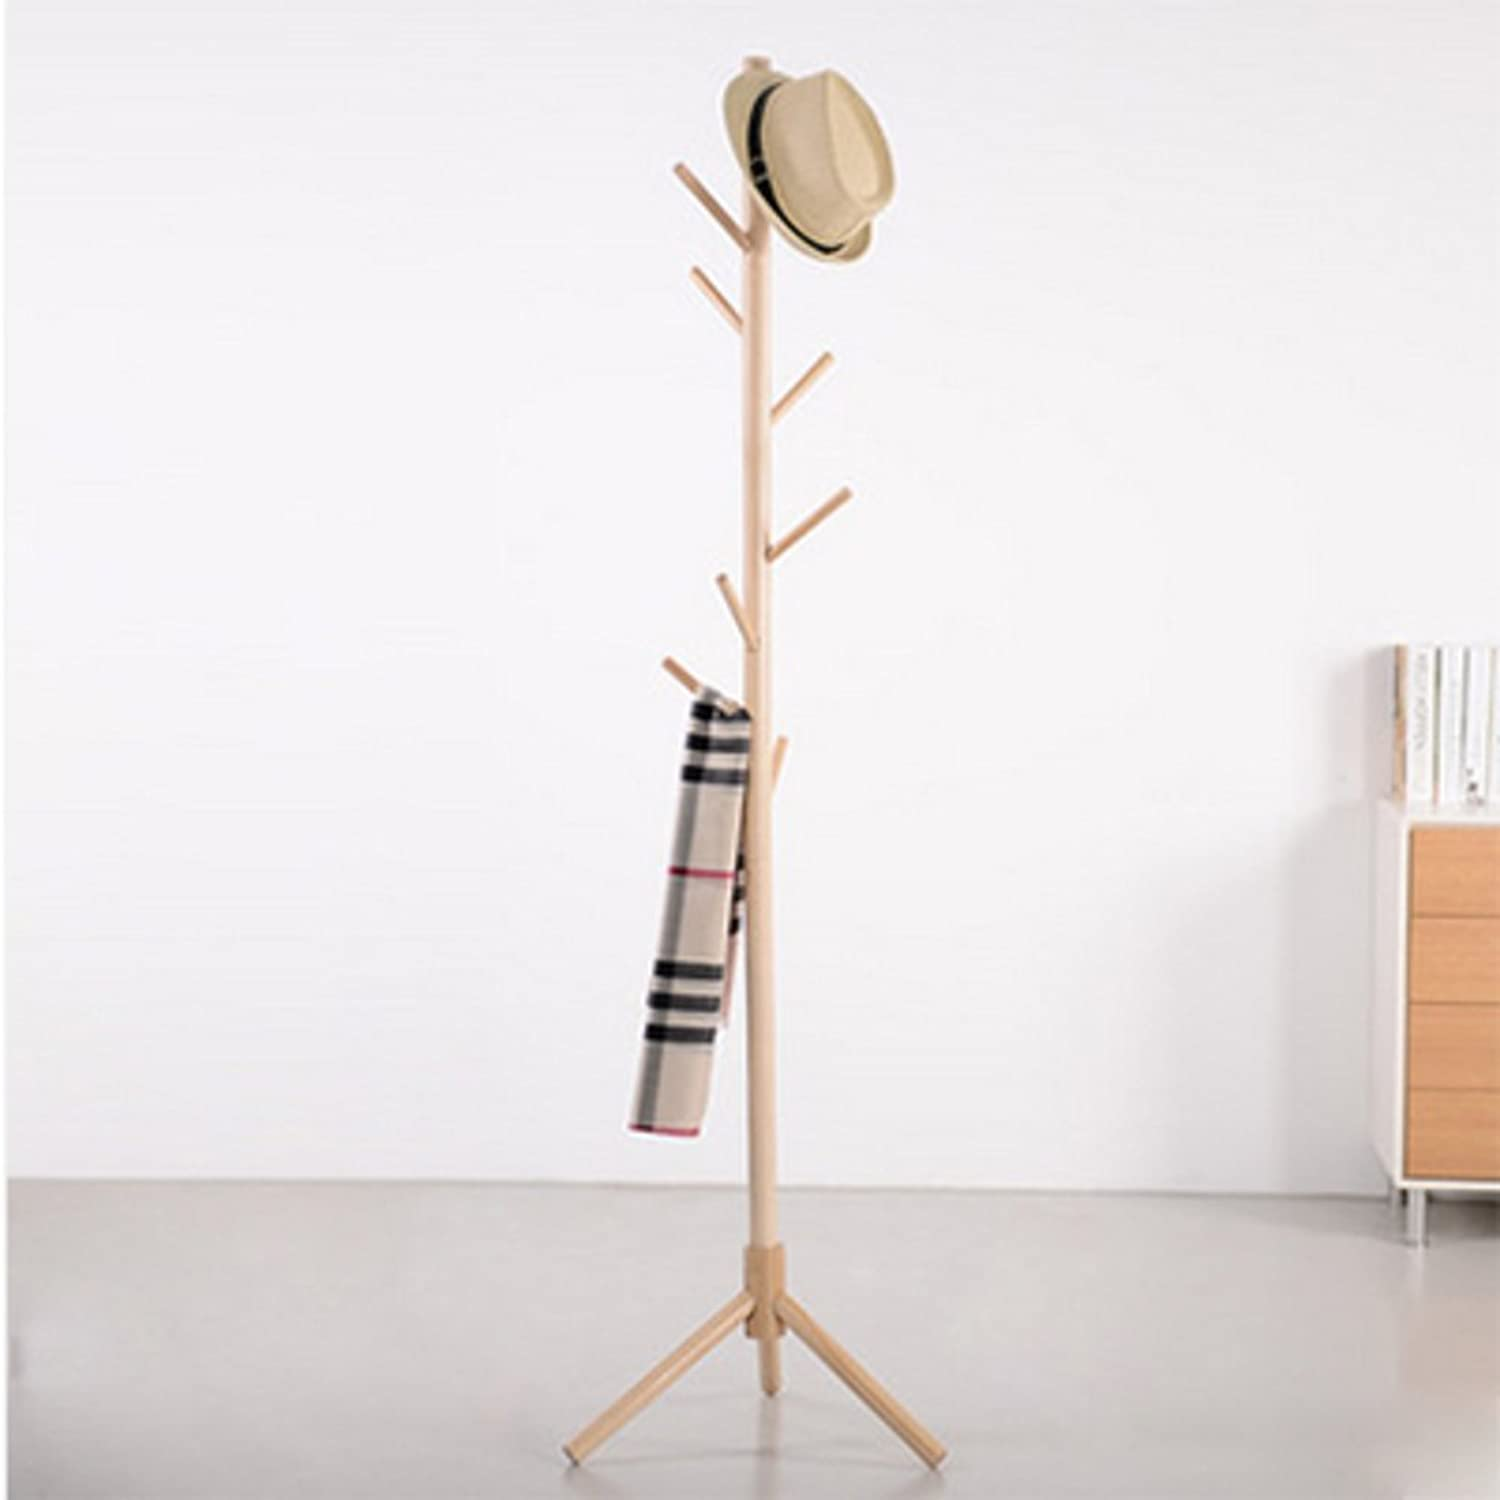 Bamboo Coat Rack,Hall Tree Free Standing,with 8 Side Hook Stand Coat Hanger for Jacket Umbrella Clothes Hats Scarf Handbags-D 40x176cm(16x69inch)